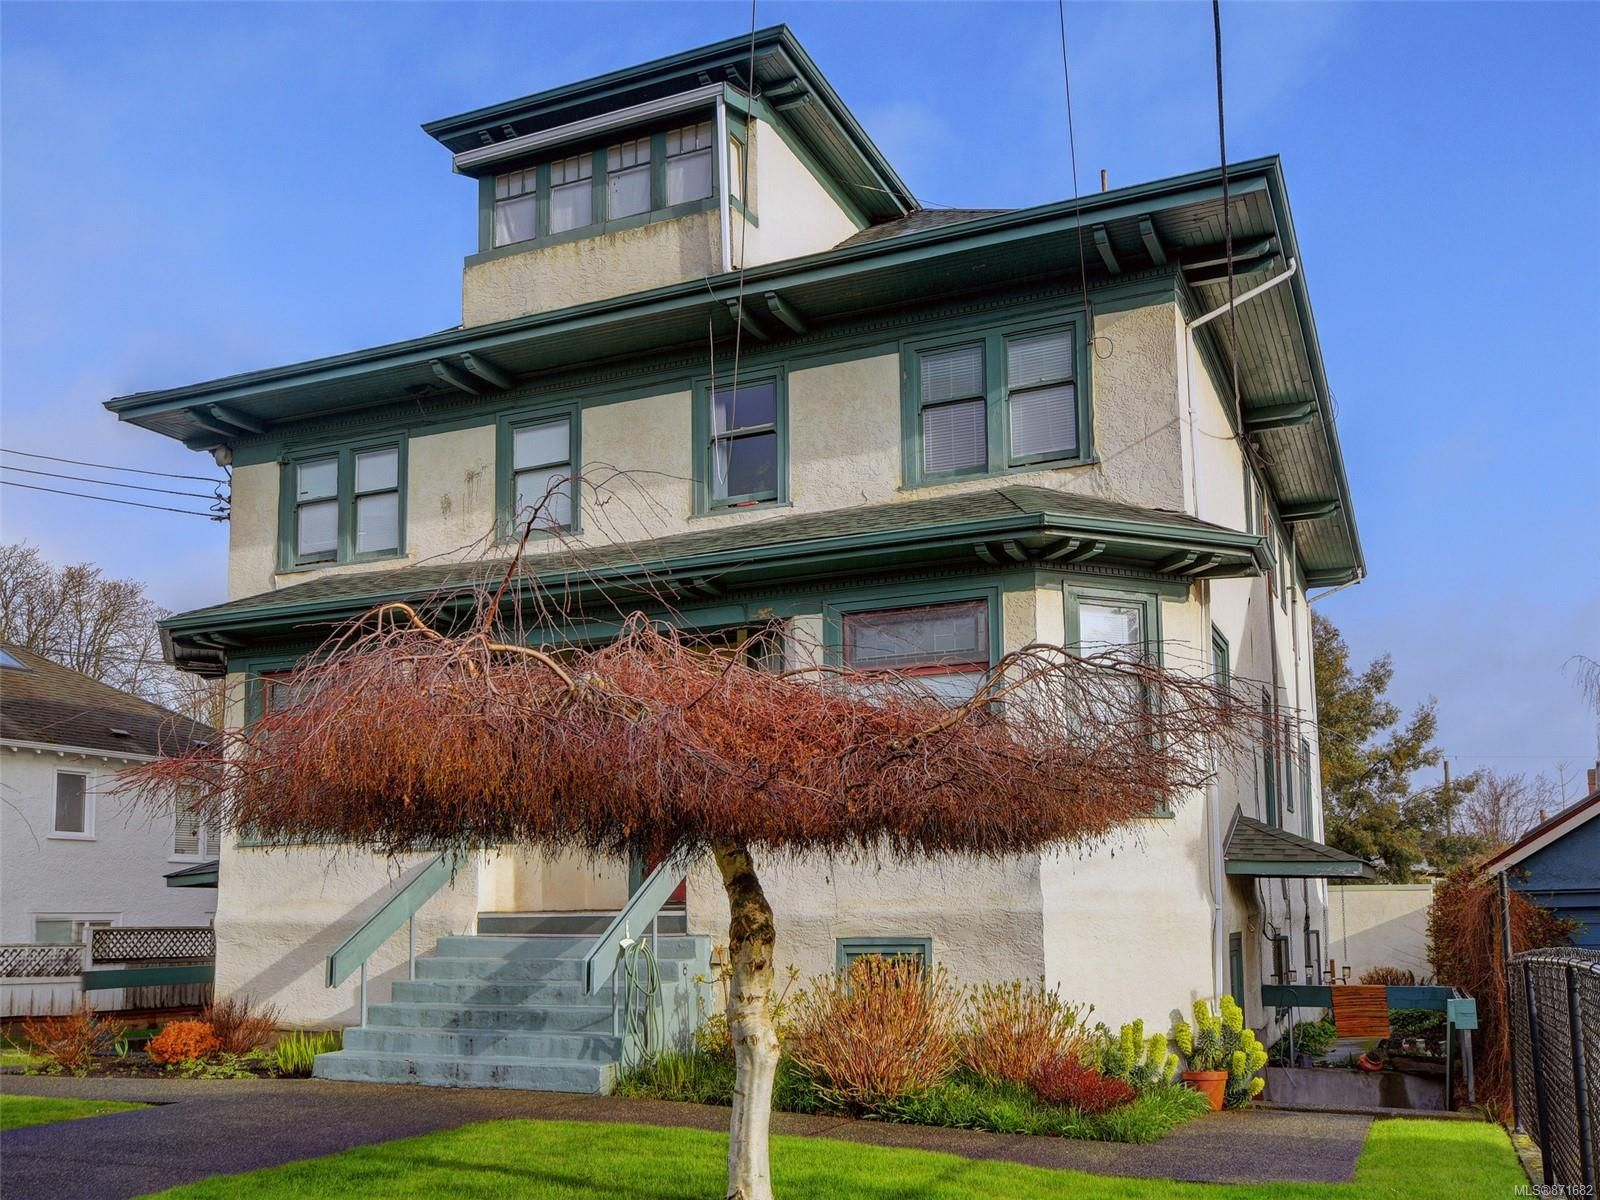 Main Photo: 1120 May St in : Vi Fairfield West Multi Family for sale (Victoria)  : MLS®# 871682